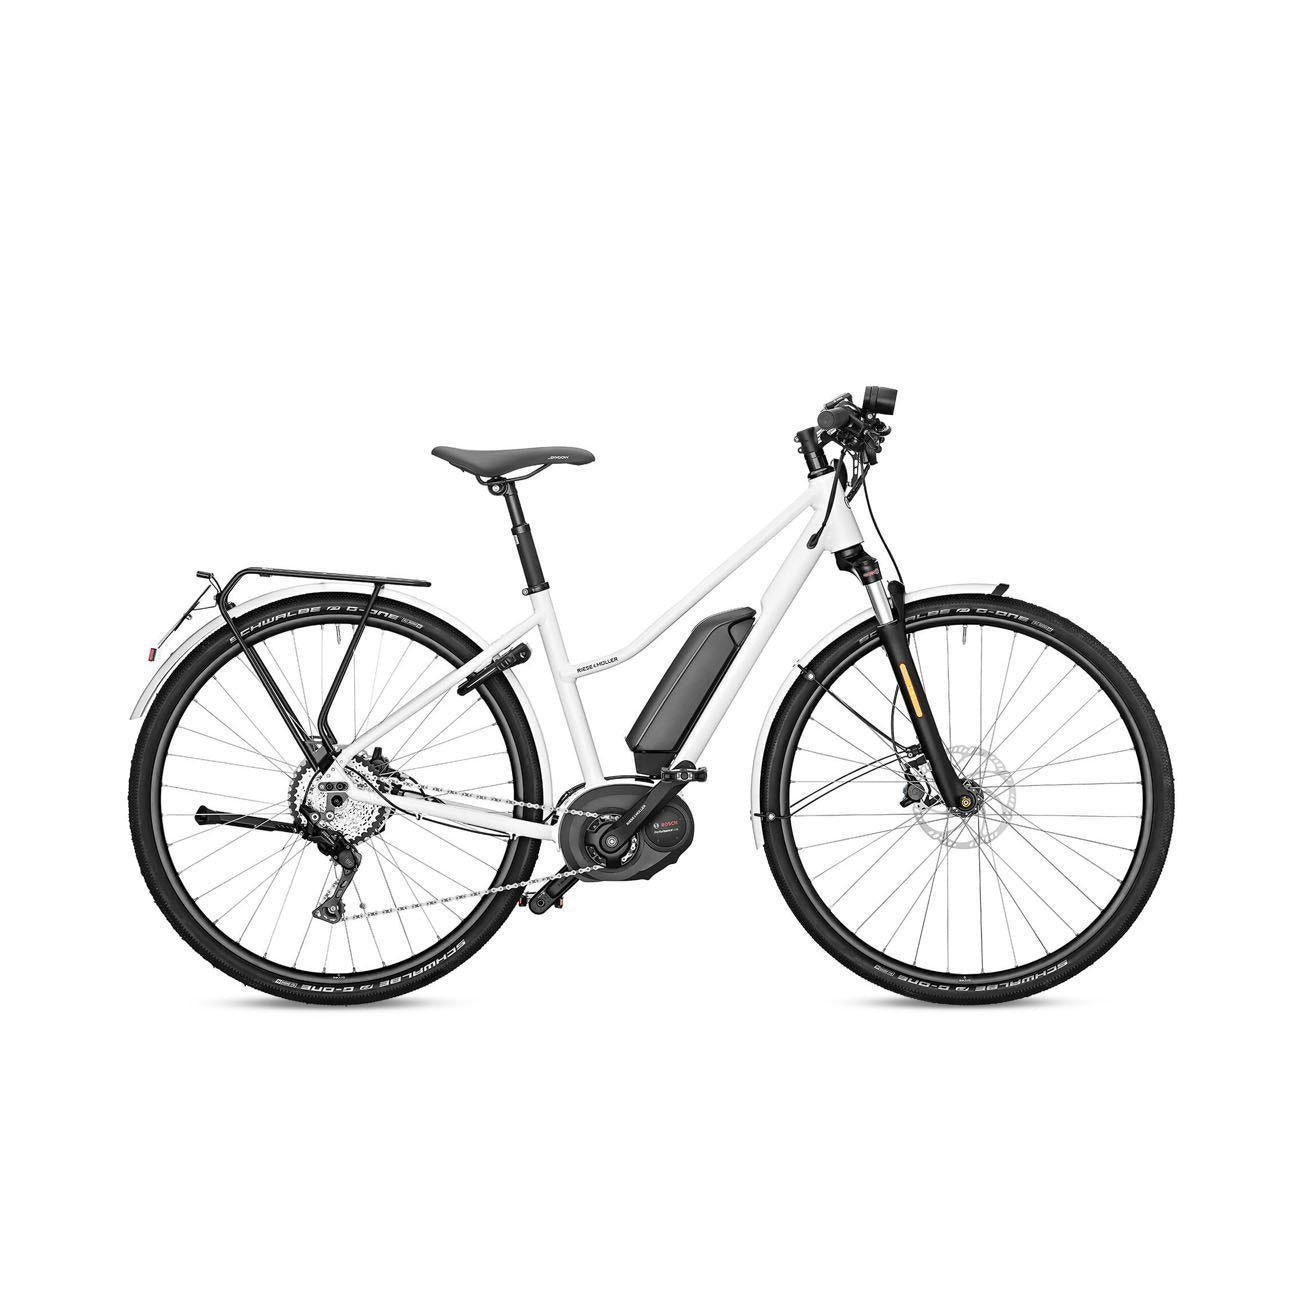 Riese & Müller Electric Bikes Roadster GT Touring HS-Oregon EBikes